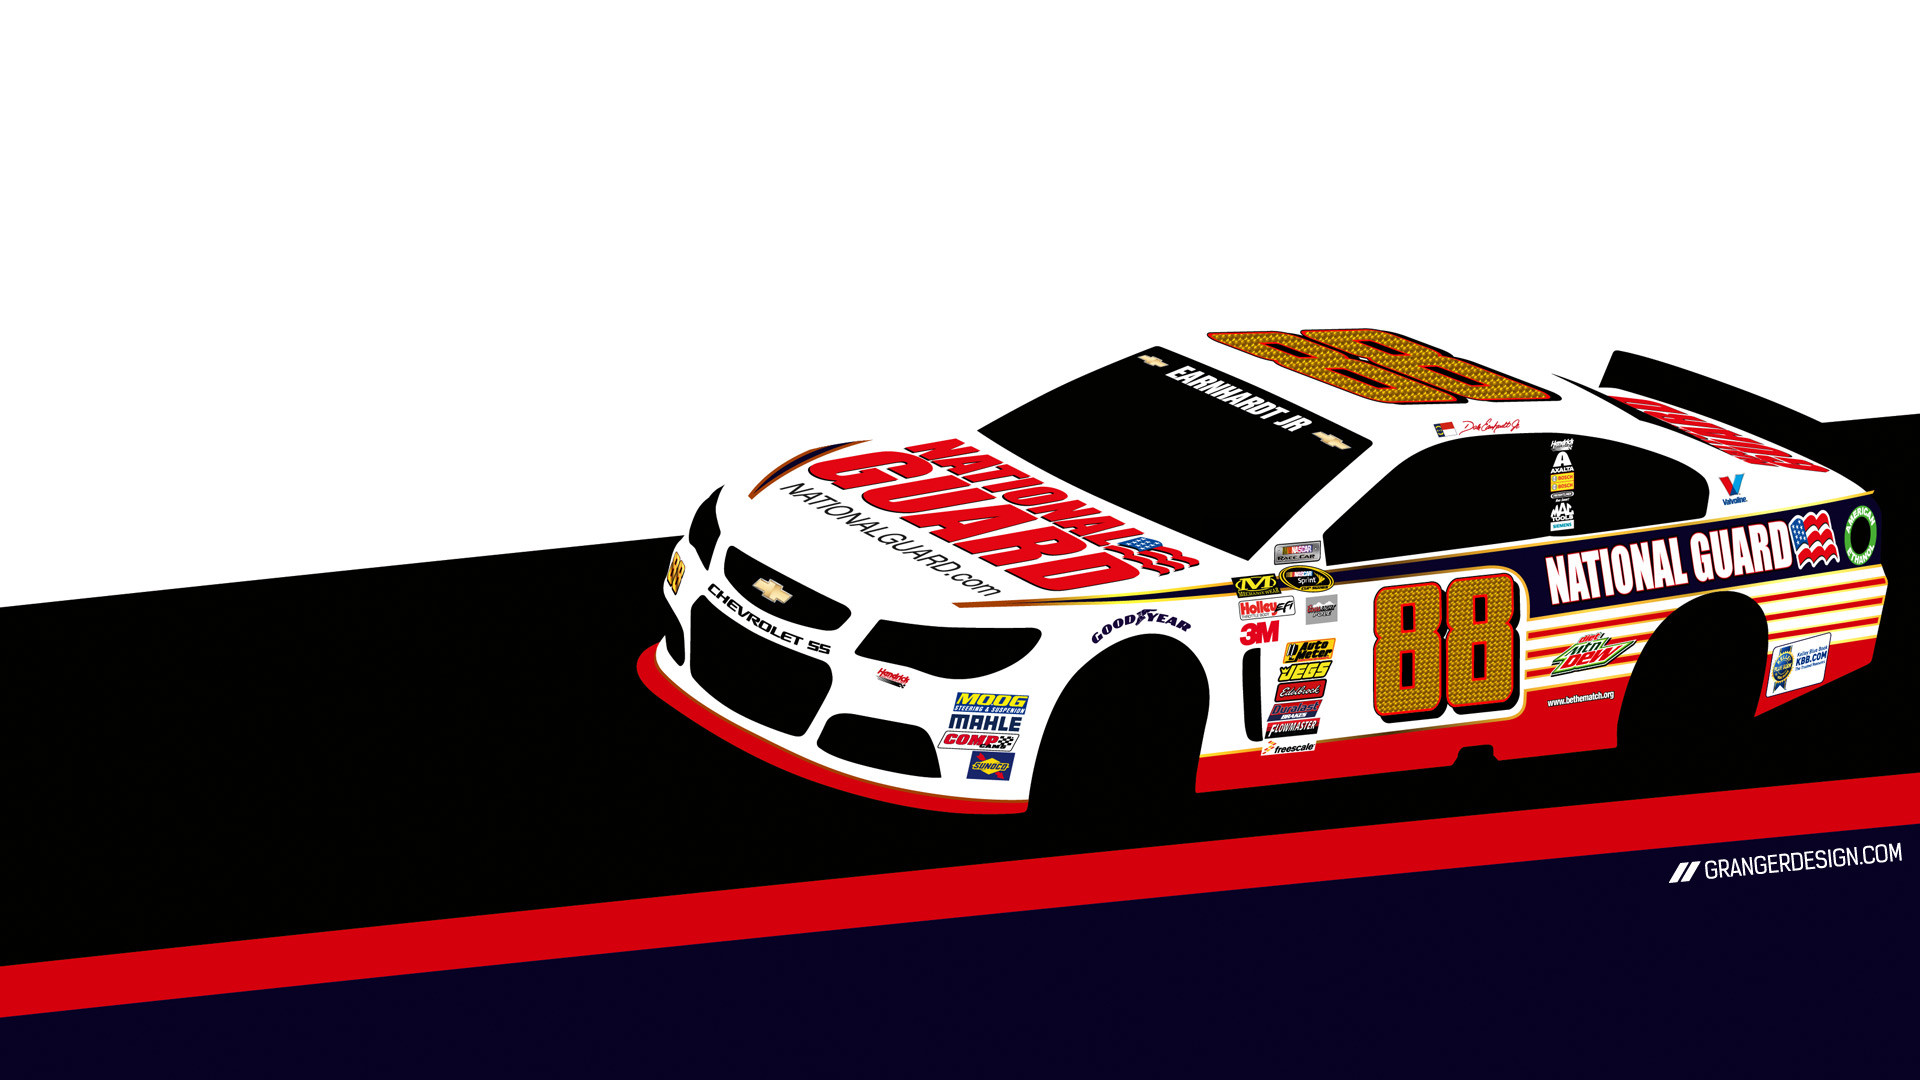 Dale Earnhardt Jr. Desktop Wallpaper. 1920×1080